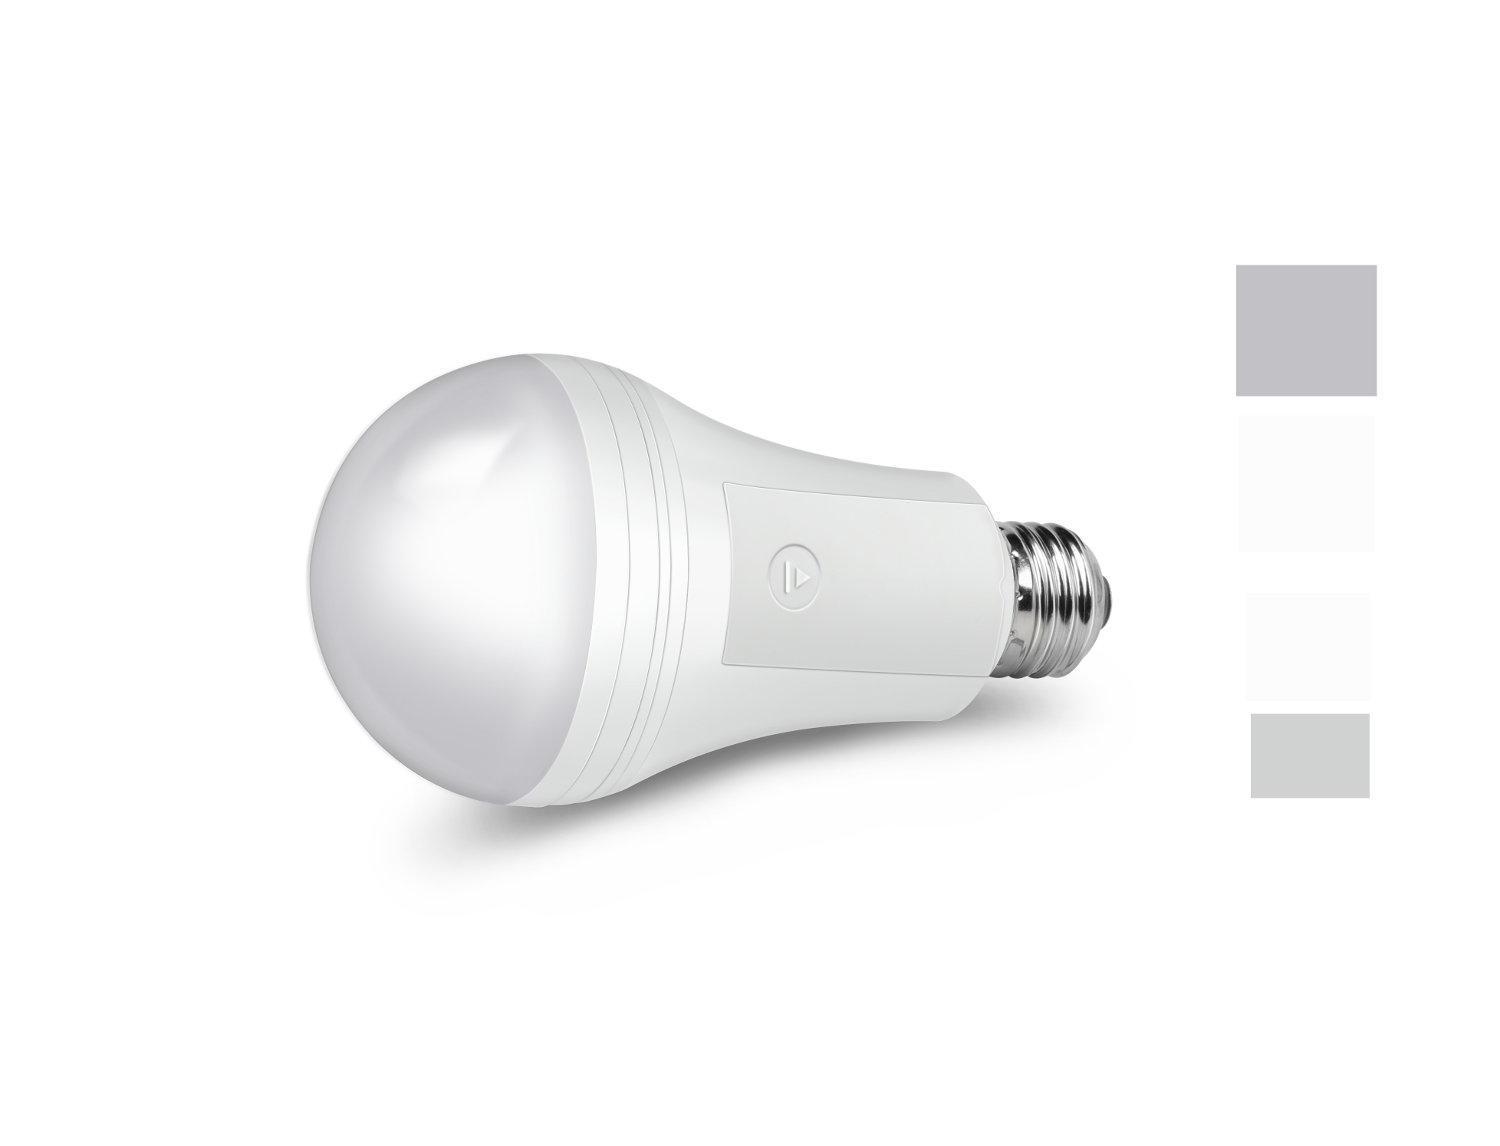 Smart LED Light Bulb Shines Even During a Power Outage | Home ...